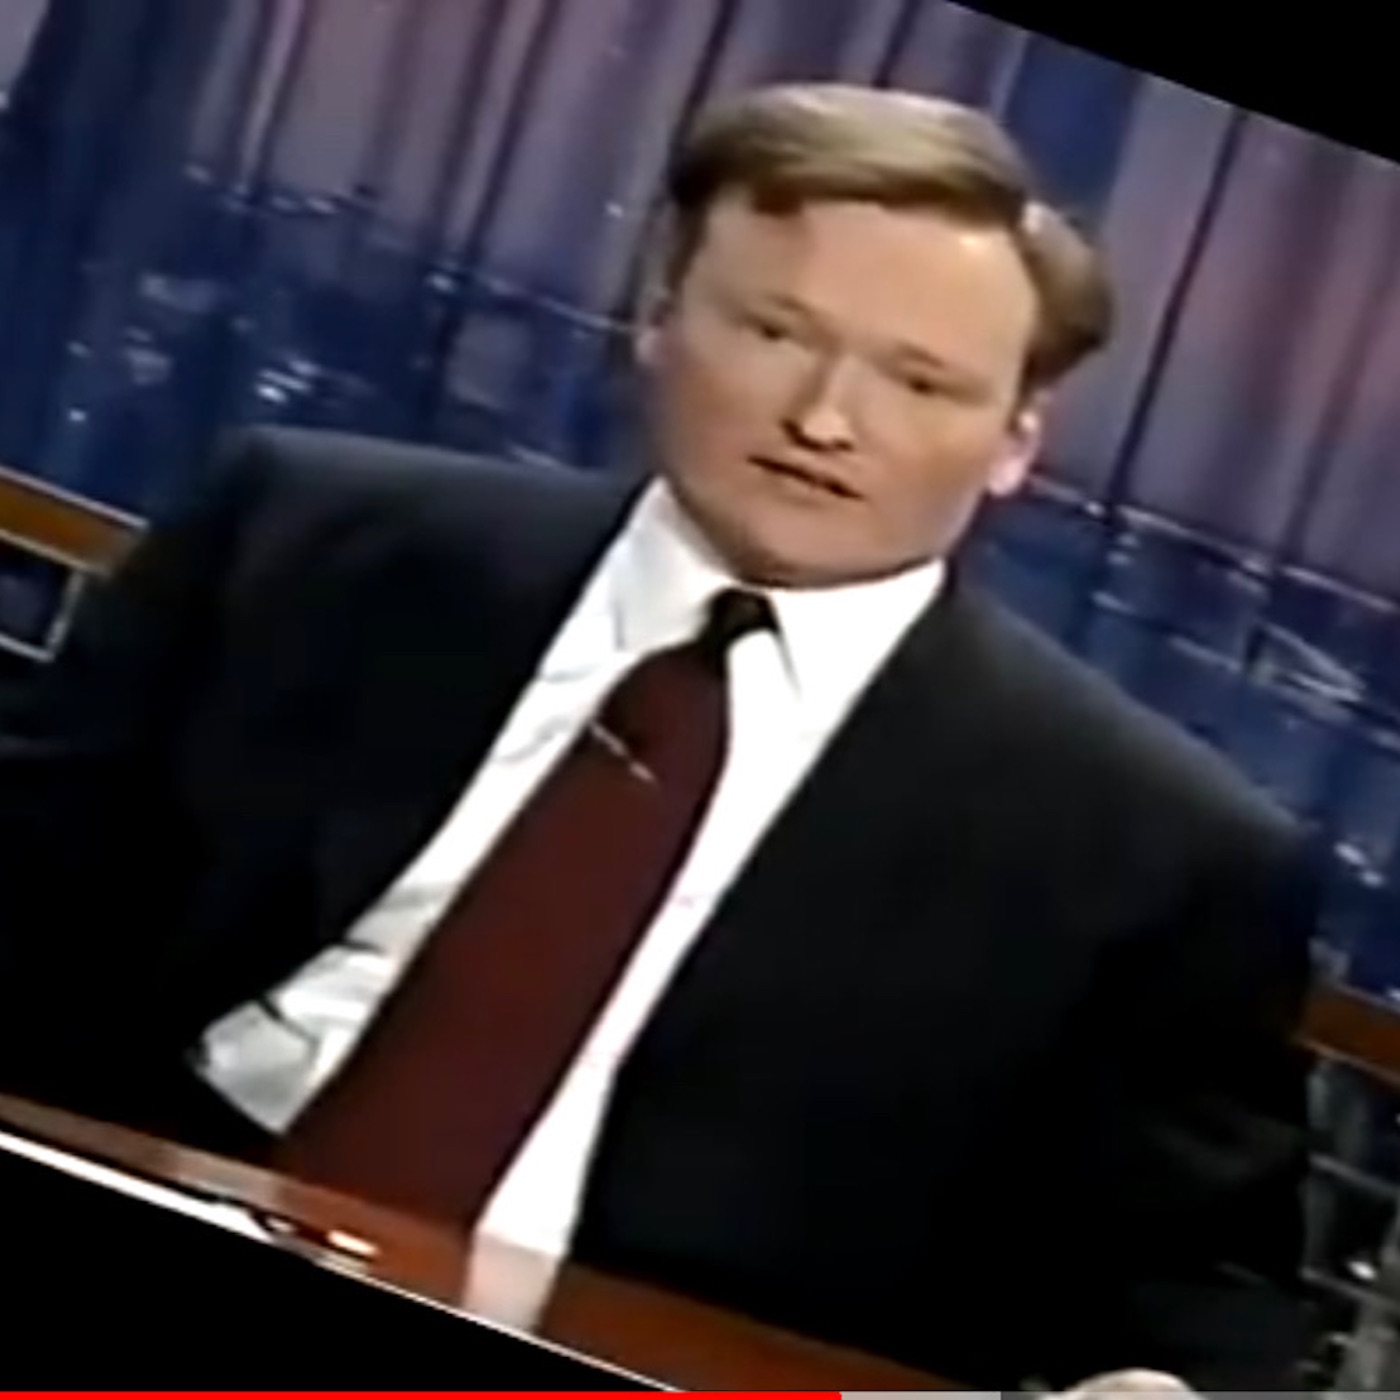 Square thumbnail from today's show, Sunday, July 28, 2019, depicting a screenshot from a  YouTube video  of Conan O'Brien (sp?) in his first show monologue after the 9/11/01 terror attacks.